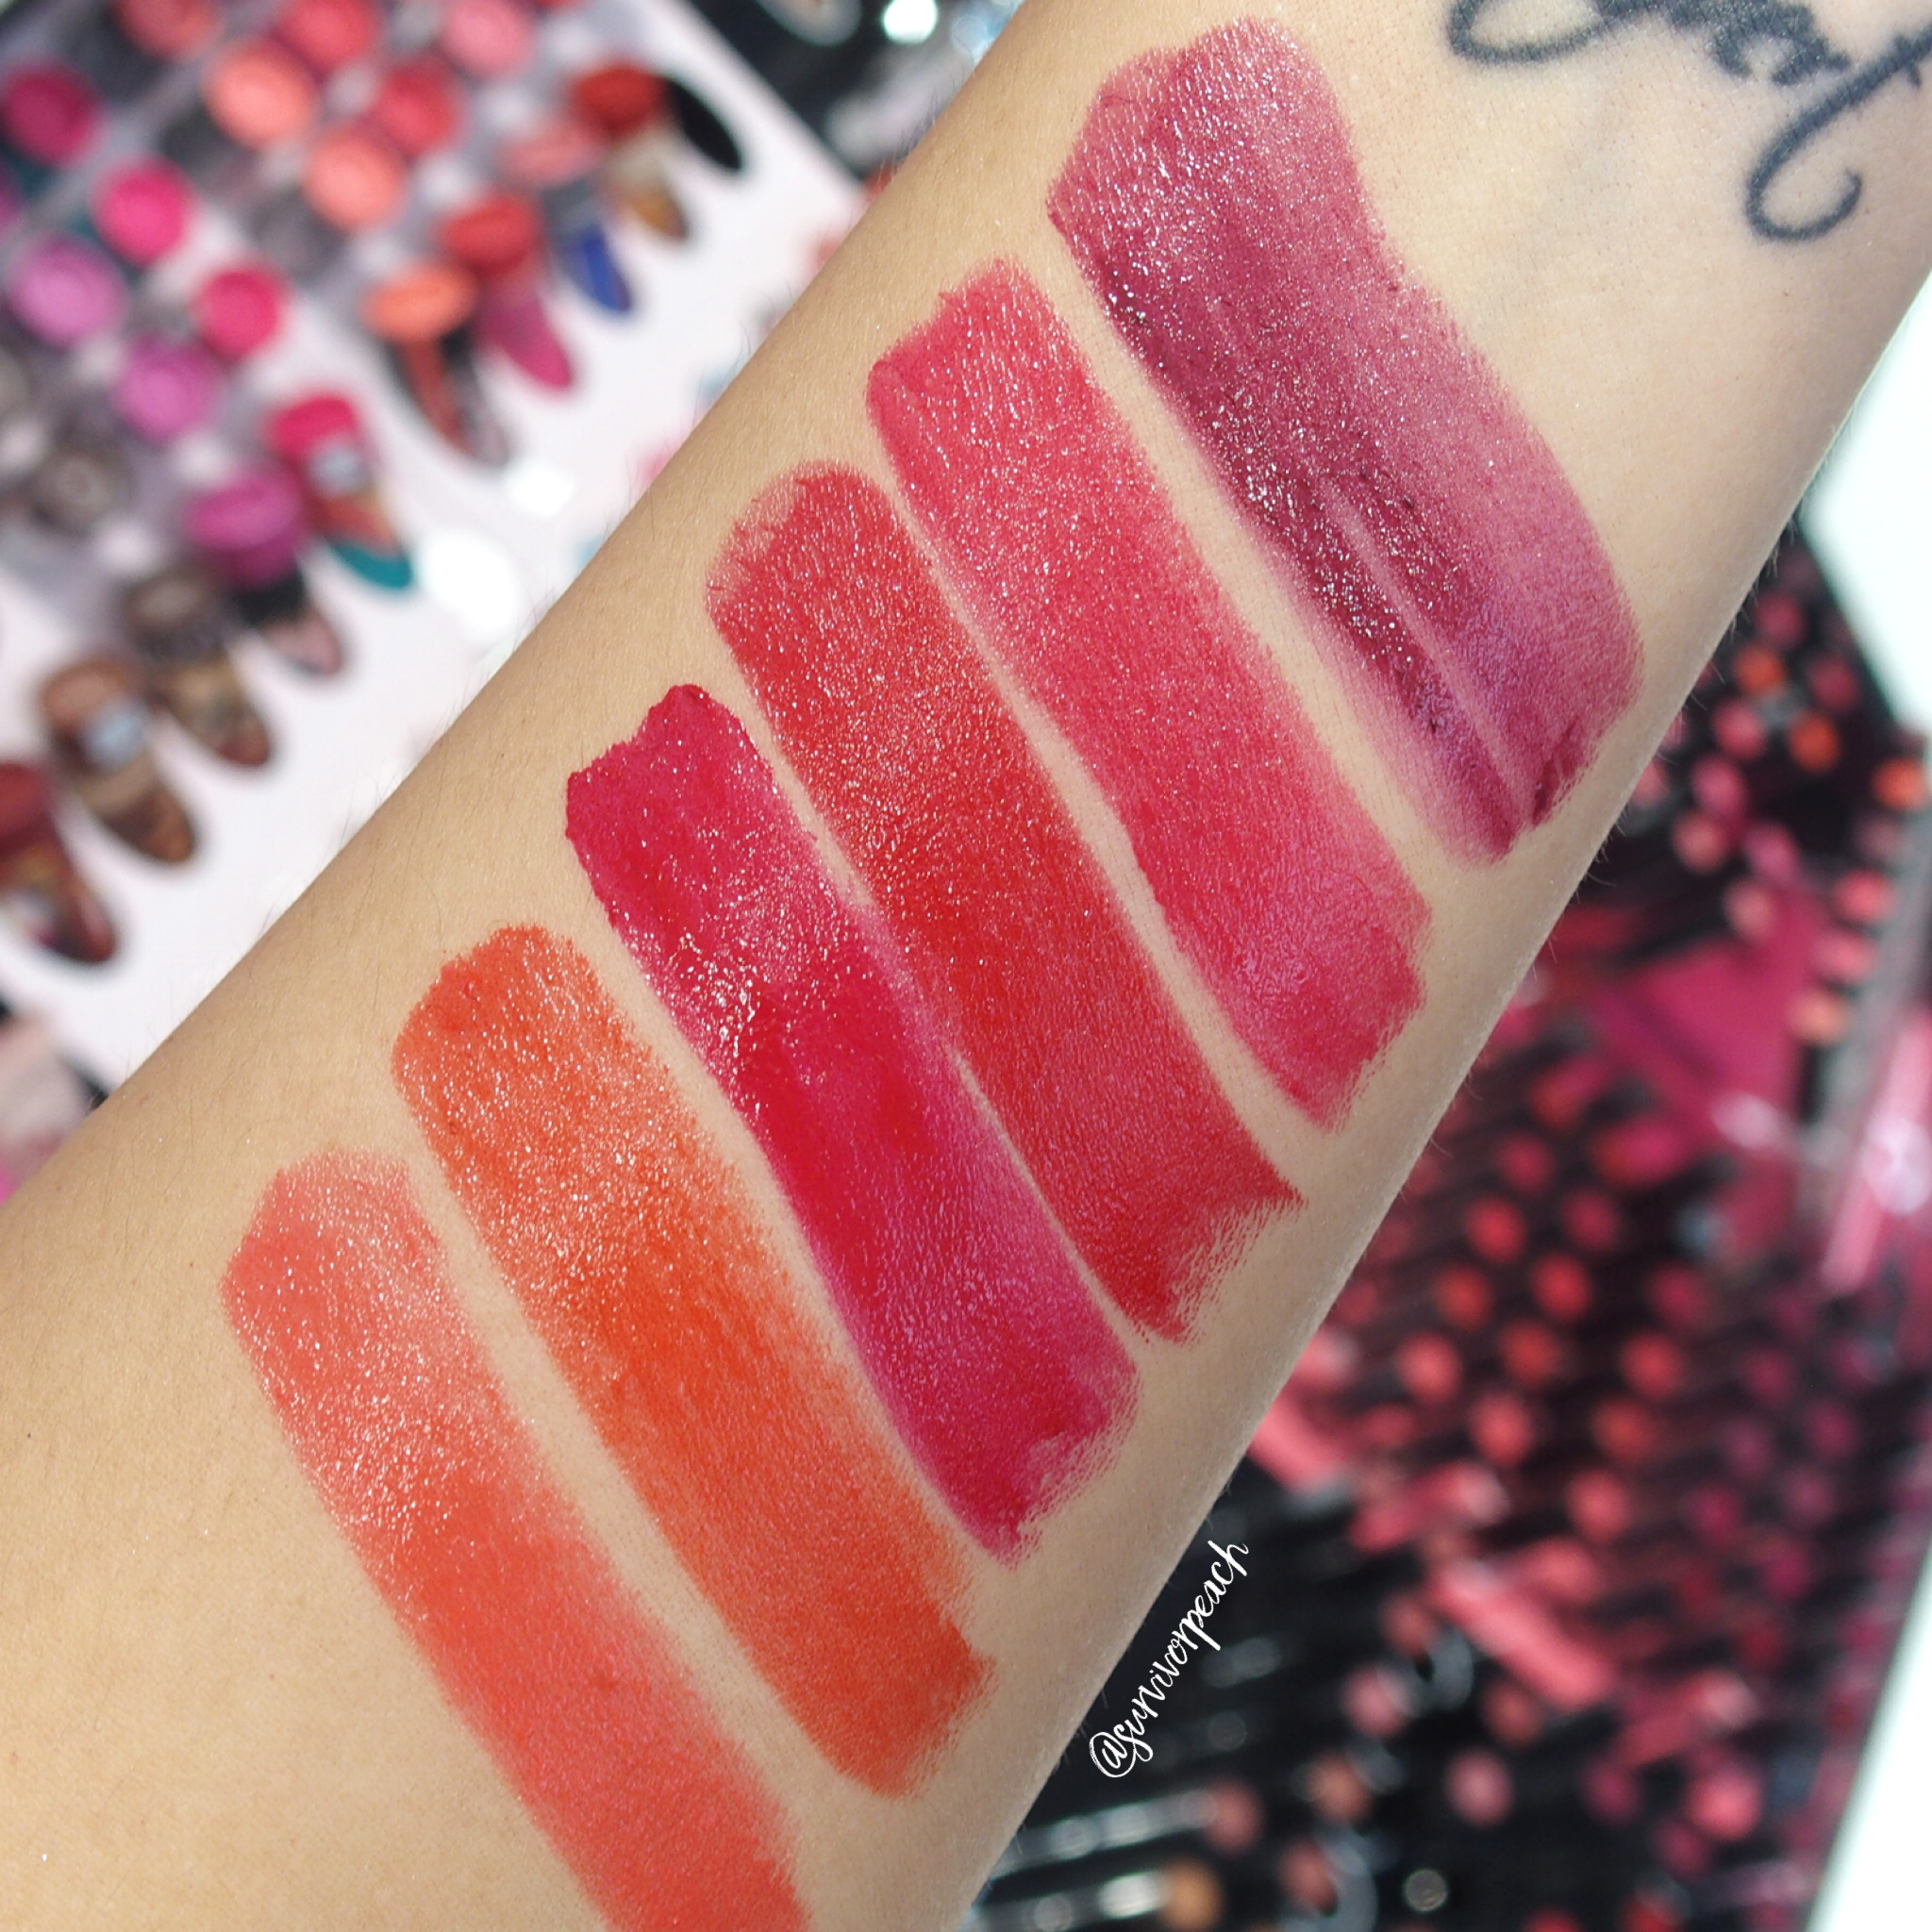 Sephora Collection Lipstick Rouge Lacquer Lipstick swatches - L08 Hear Me Roar, L09 Love Wins, L10 Survivor, L11 Love Letter, L12 Be The Boss, L13 CEO